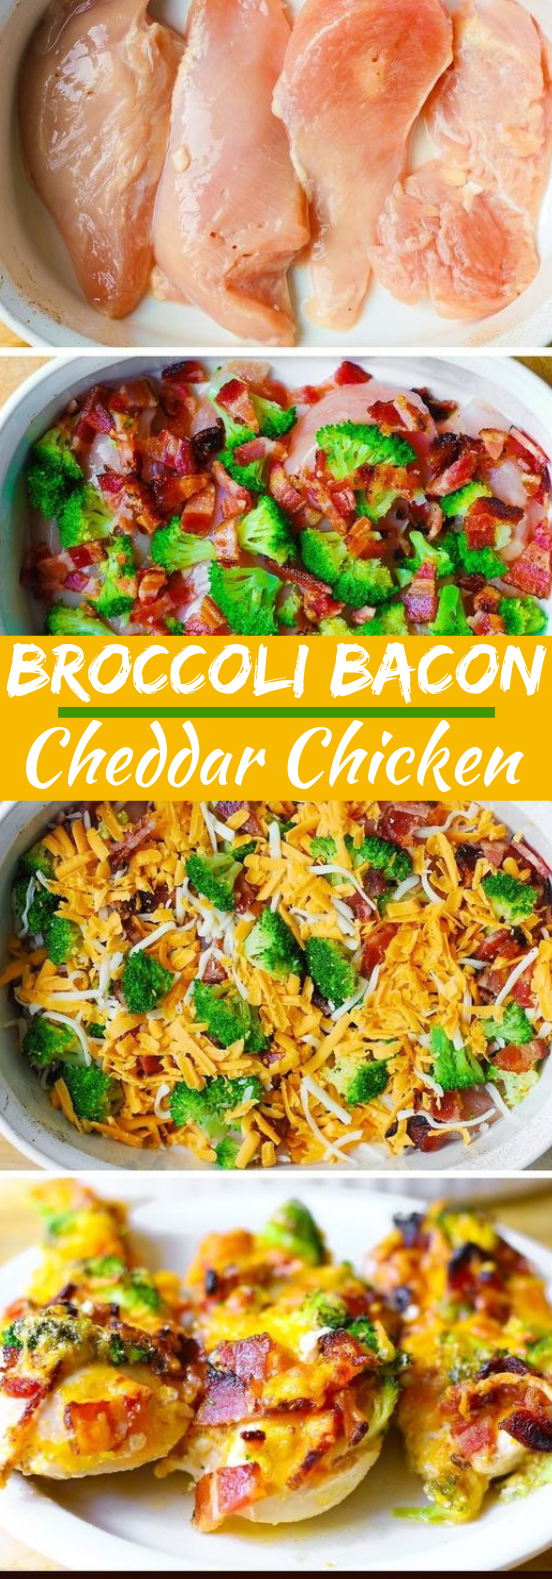 Broccoli Bacon Cheddar Chicken #dinner #chicken